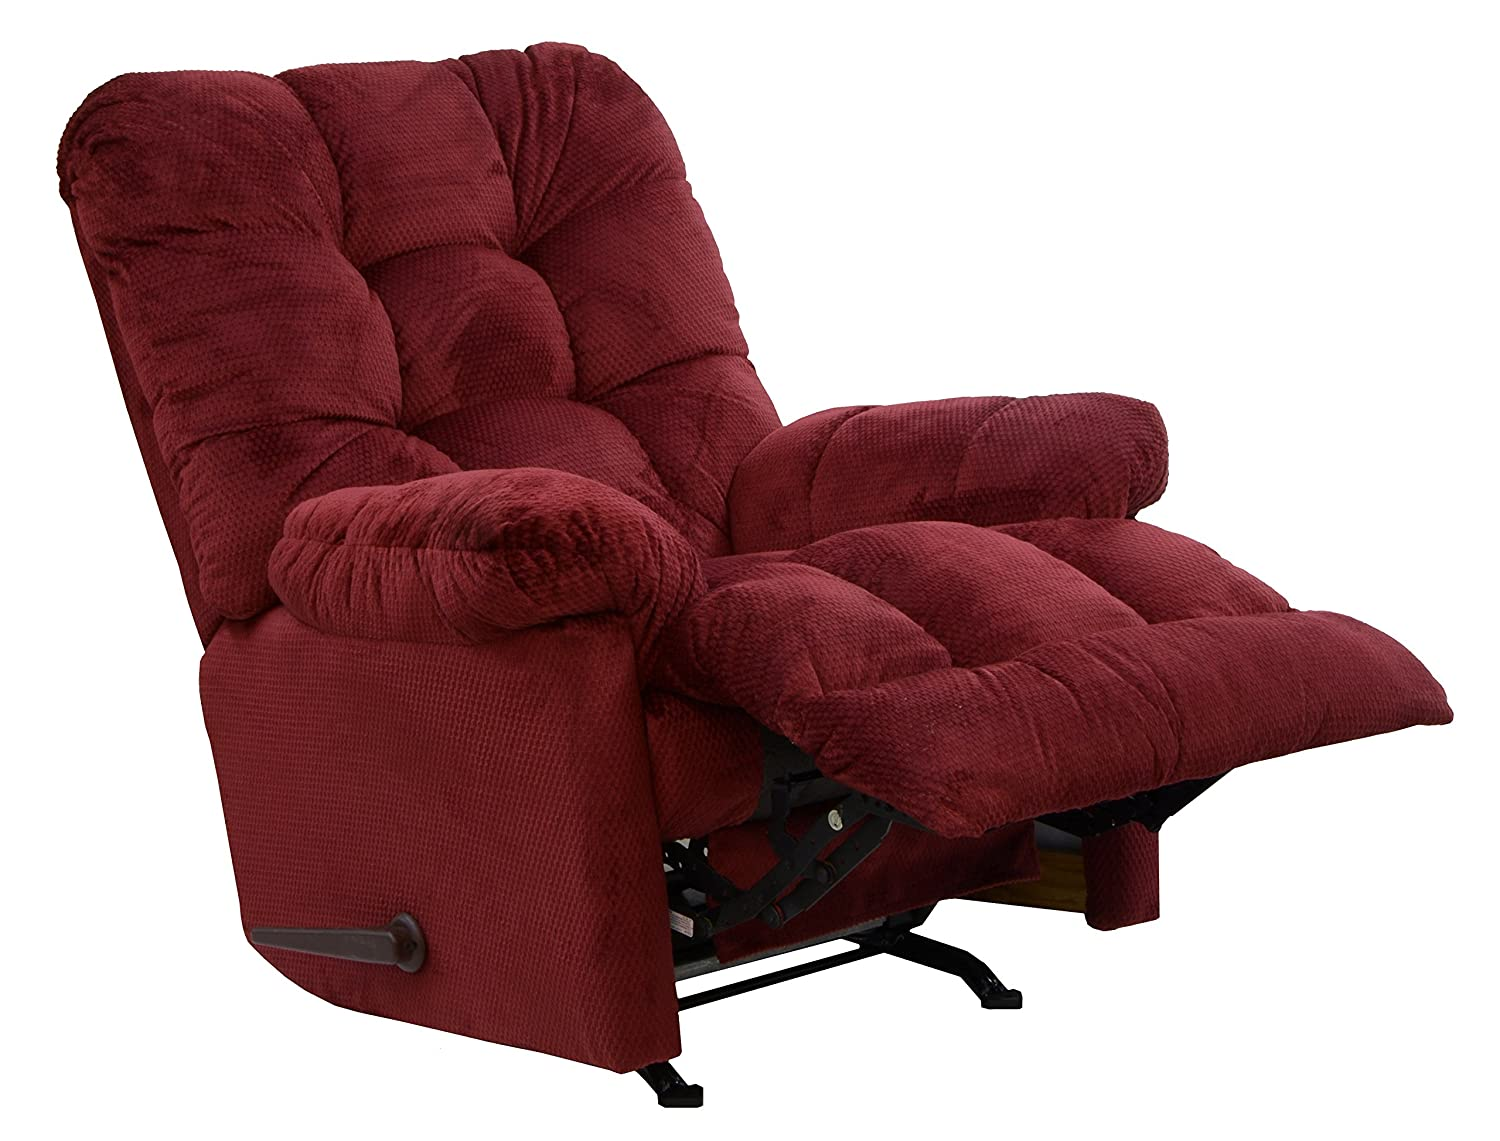 Amazon.com CATNAPPER 47372176540 Nettles Merlot Chaise Rocker Recliner Deluxe Heat and Massage Kitchen u0026 Dining  sc 1 st  Amazon.com : recliner chaise - Sectionals, Sofas & Couches